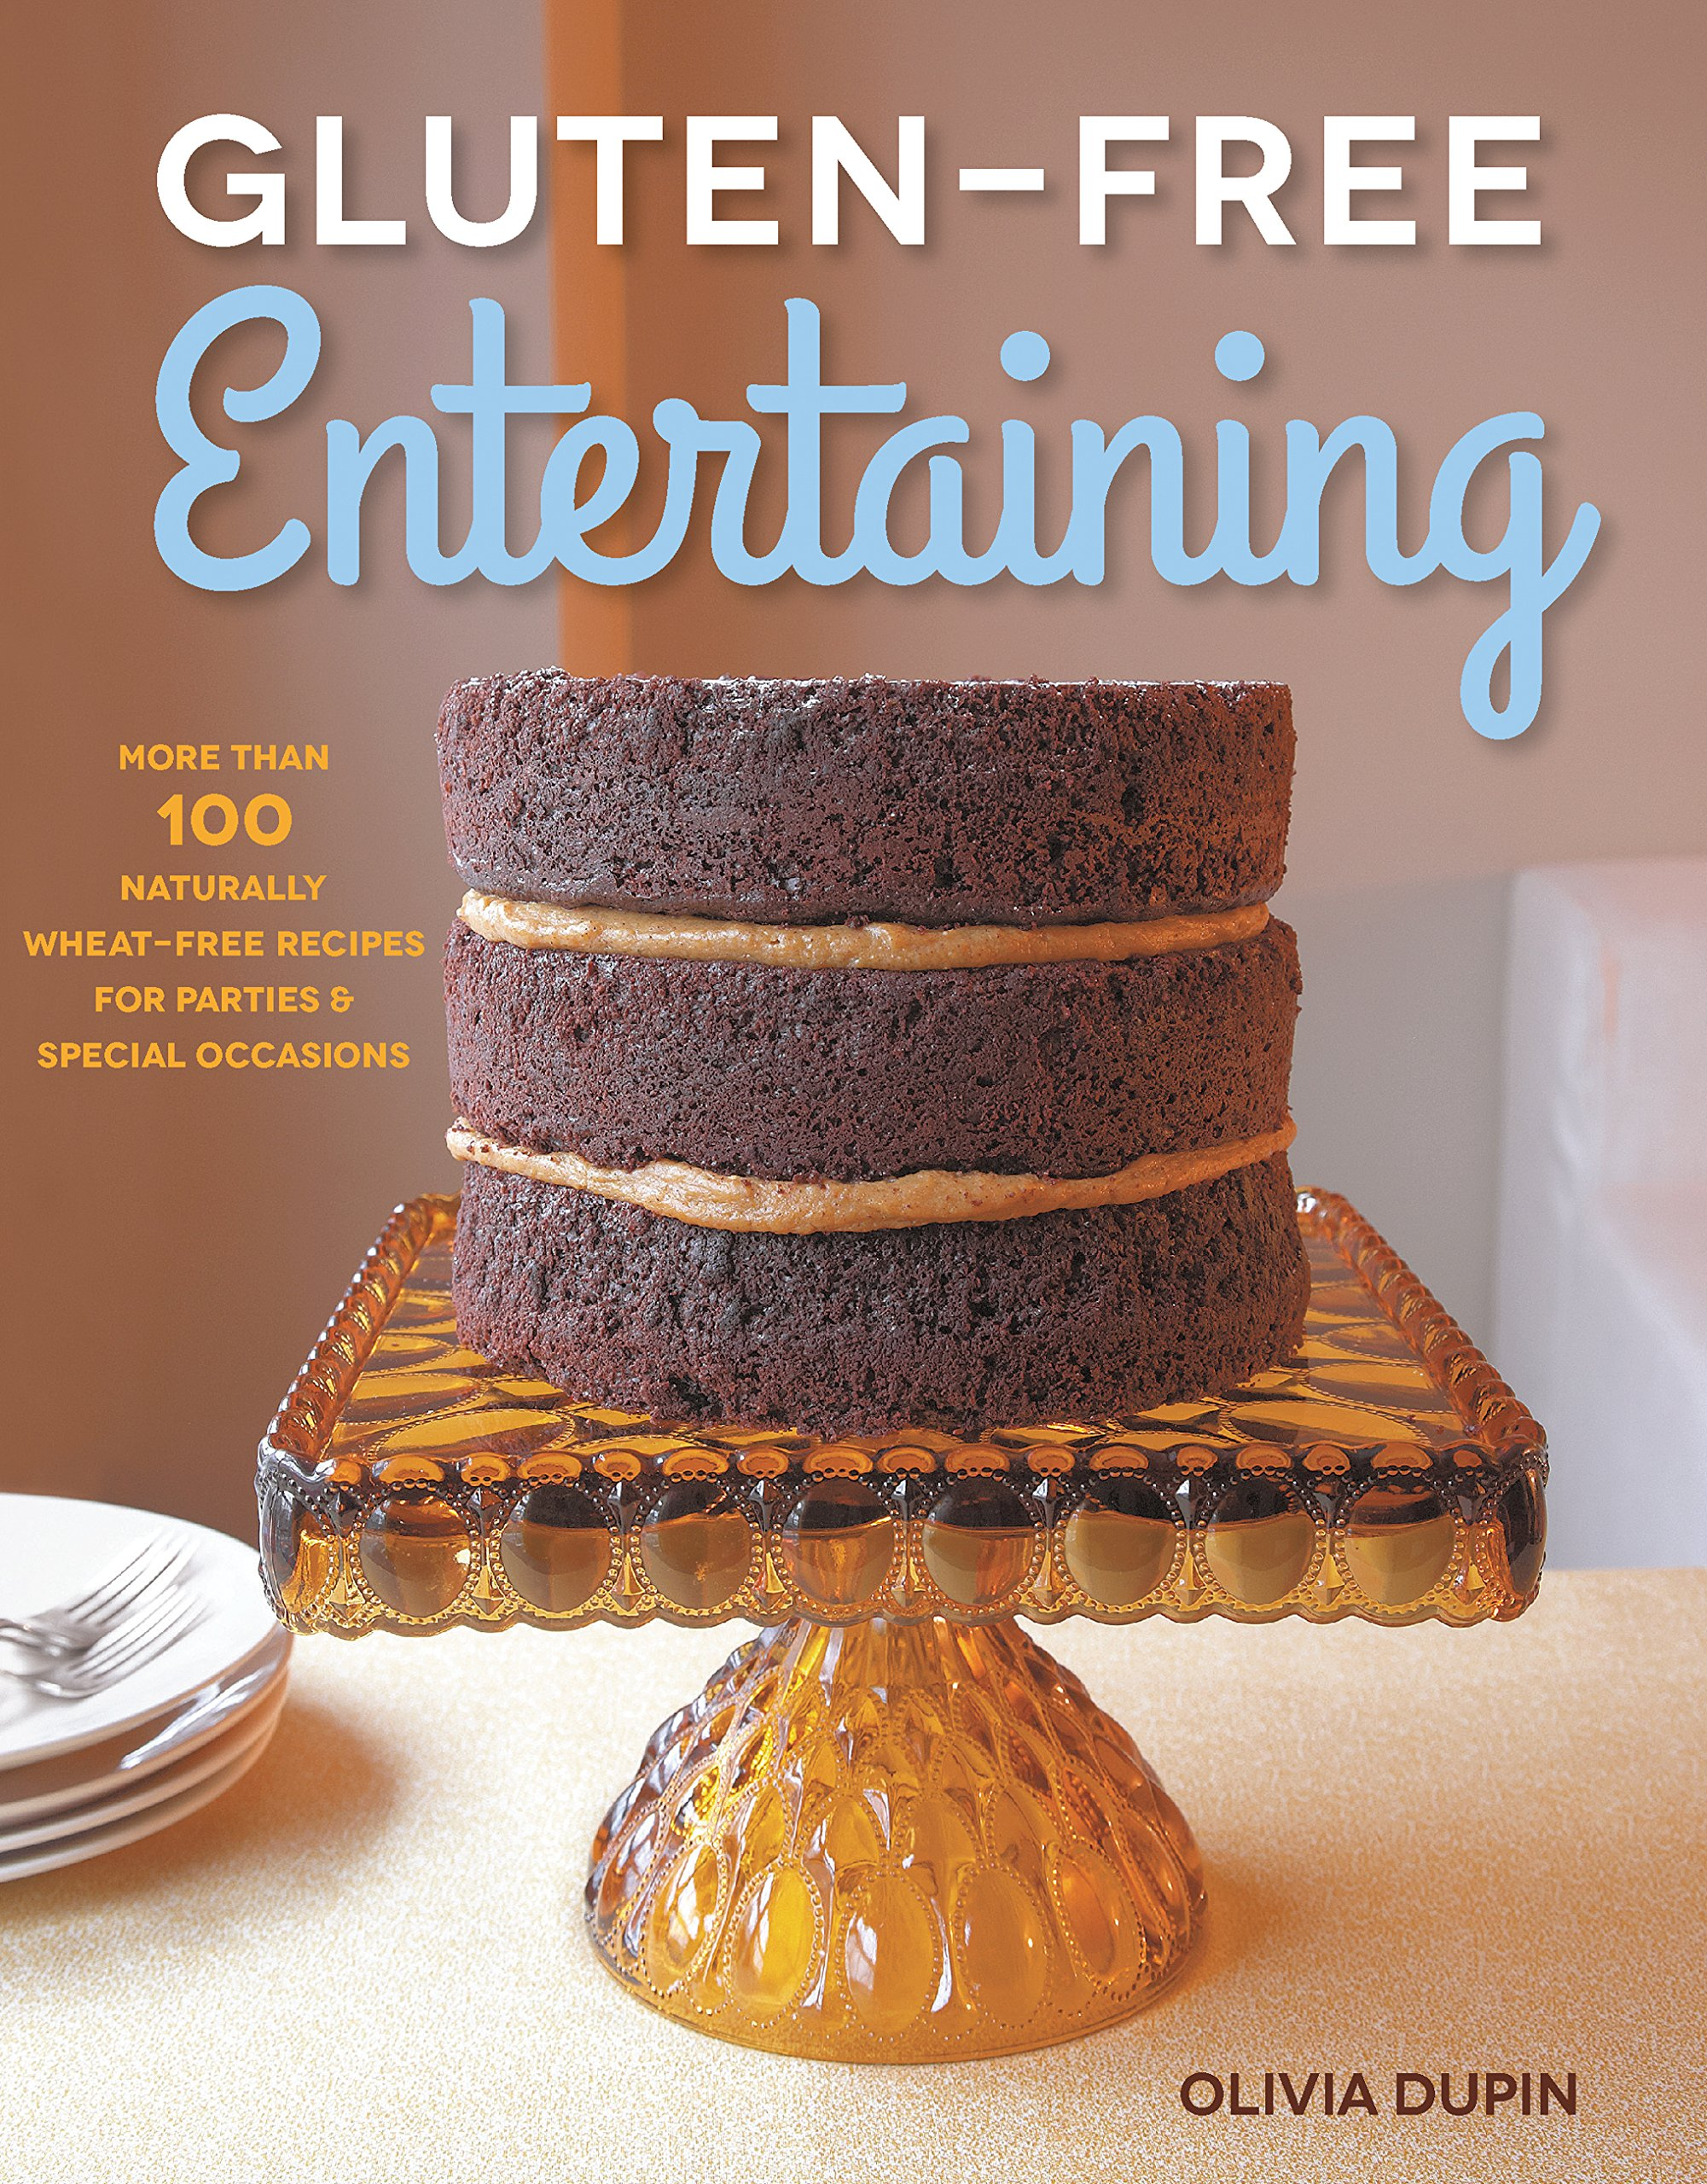 Gluten-Free Entertaining: More than 100 Naturally Wheat-Free Recipes for Parties and Special Occasions PDF